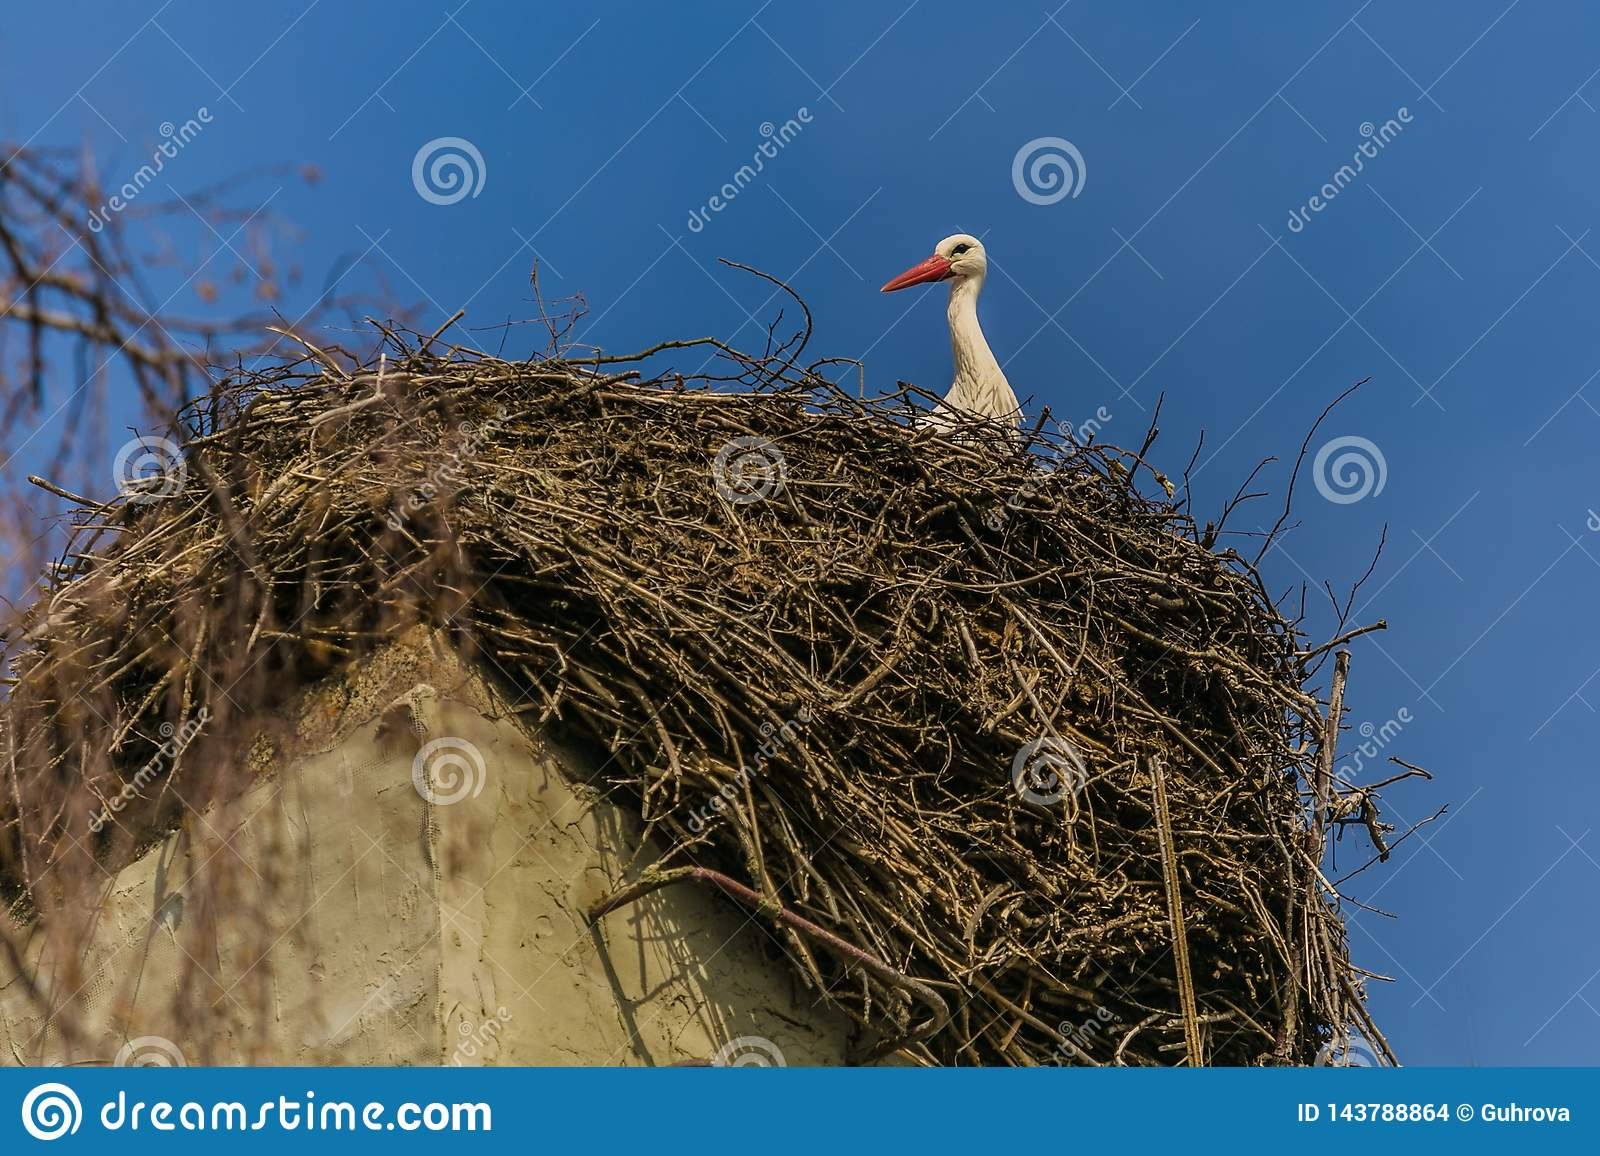 A white stork with red beak sitting on nest